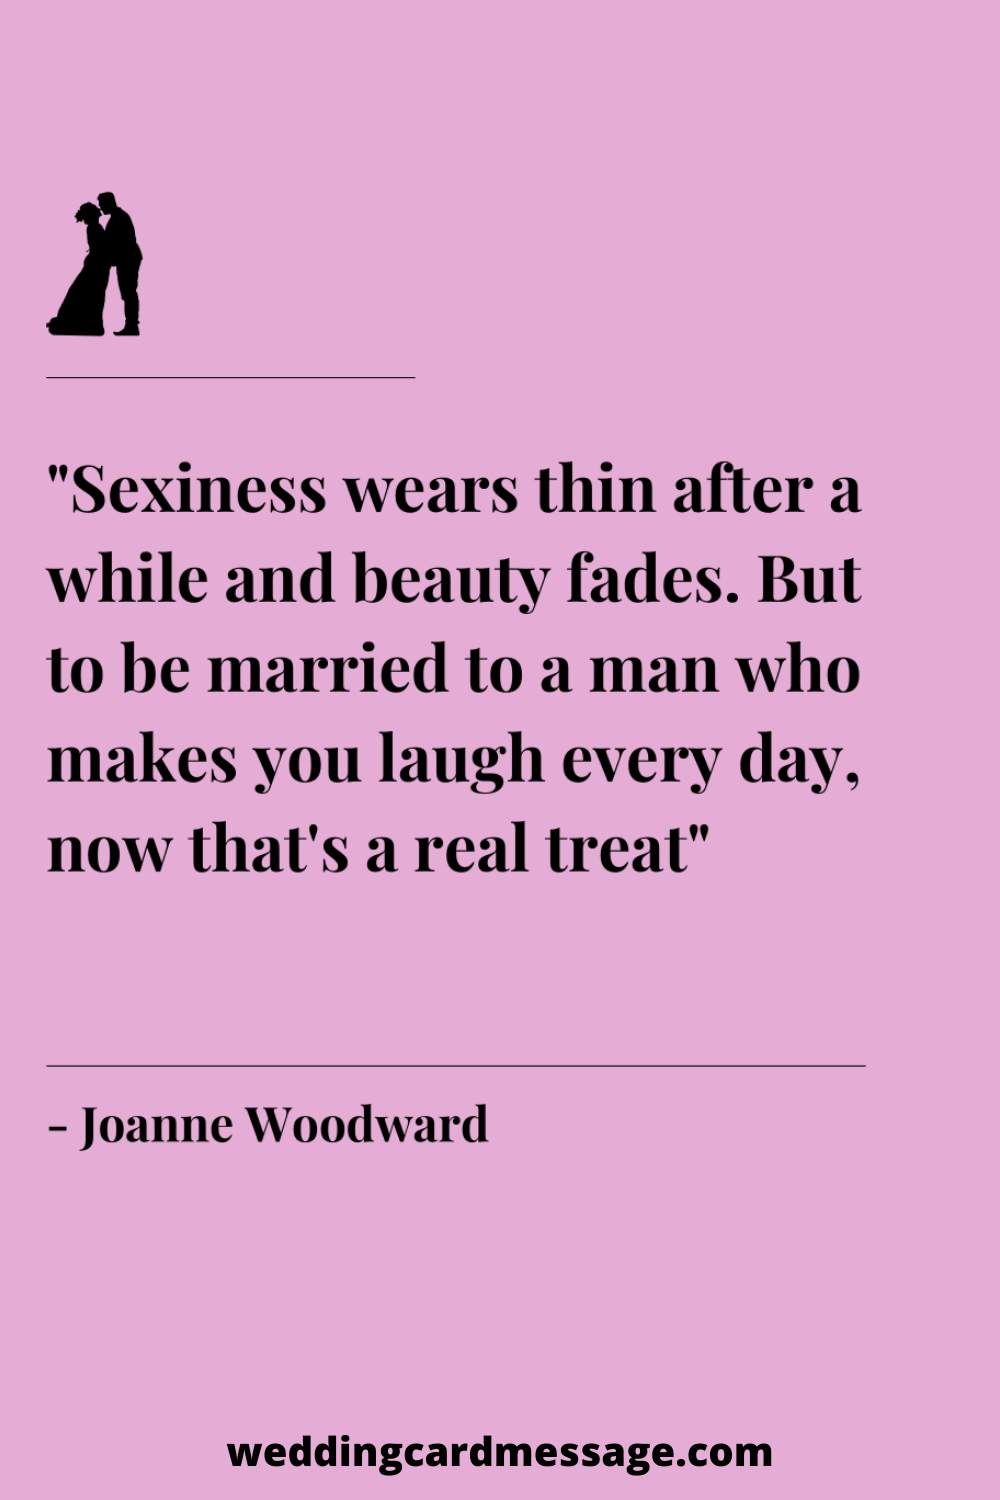 Joanne Woodward marriage quote